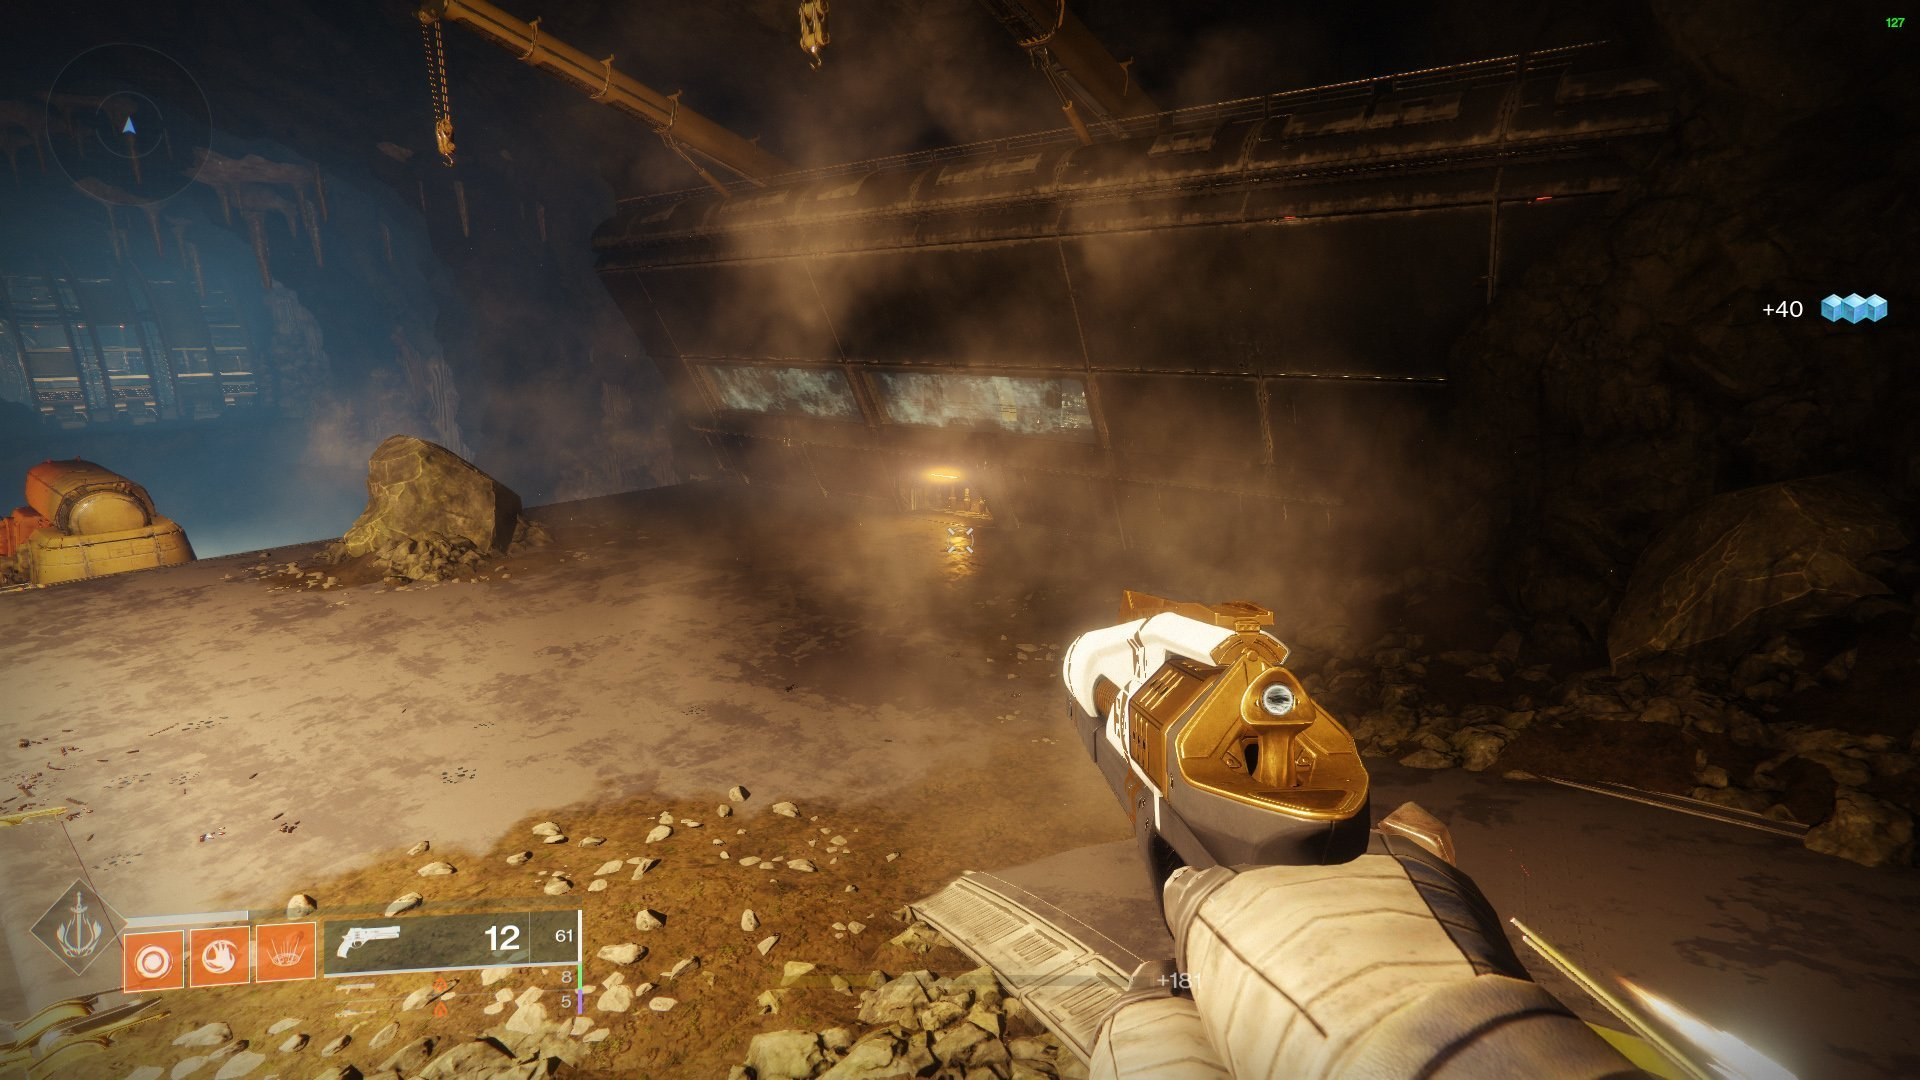 Forge Locations Black Armory Destiny 2 Guide Stash Fishhook lock location (volundr forge). forge locations black armory destiny